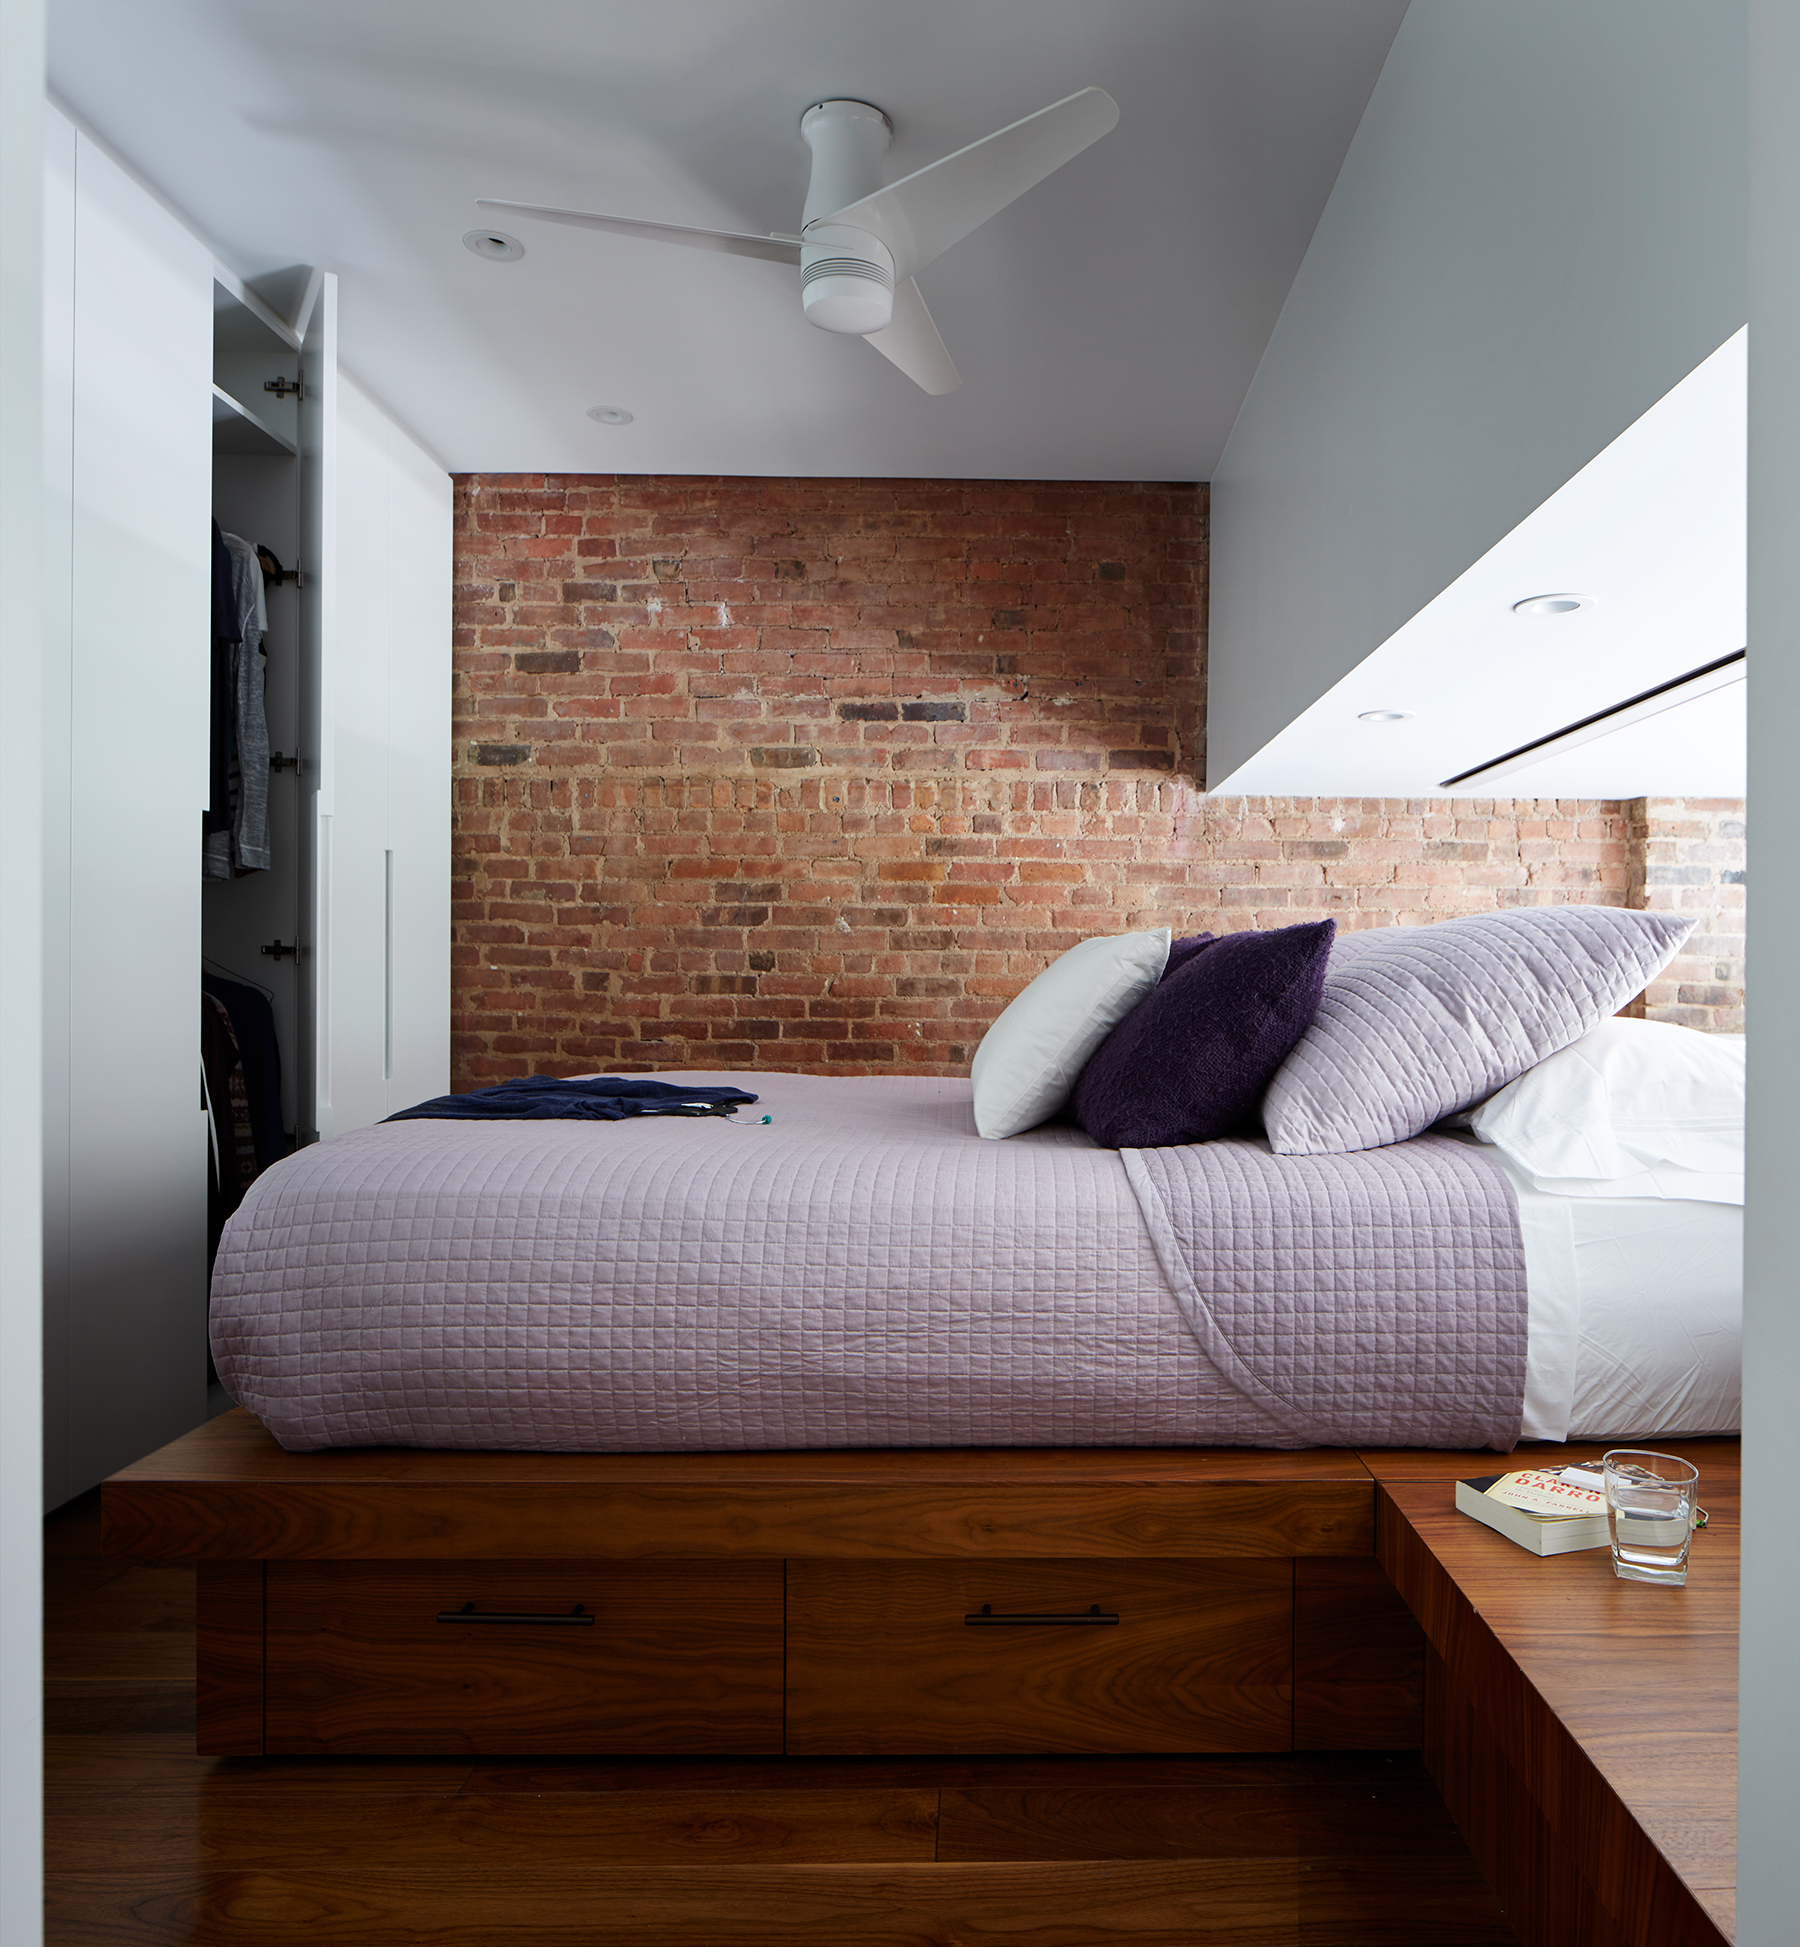 STADT Architecture, Loft, Lutron, Built-in bed, platform bed, STADT, nyc architects, ny apartment renovation